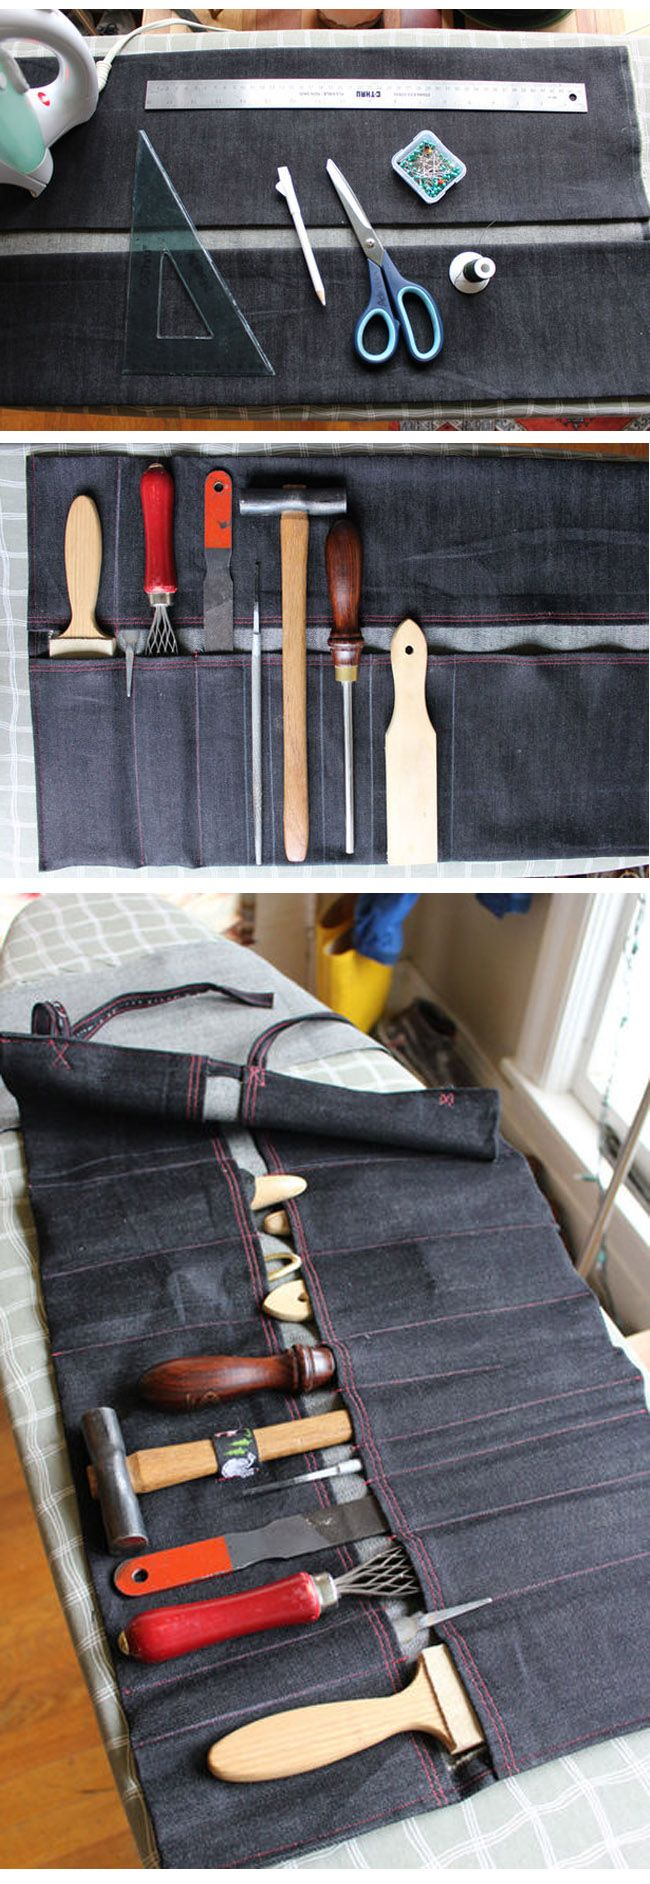 How to make a tool roll   #diy  #instructables    http://instructables.com/id/How-to-make-a-tool-roll-bring-your-hand-tools-with/